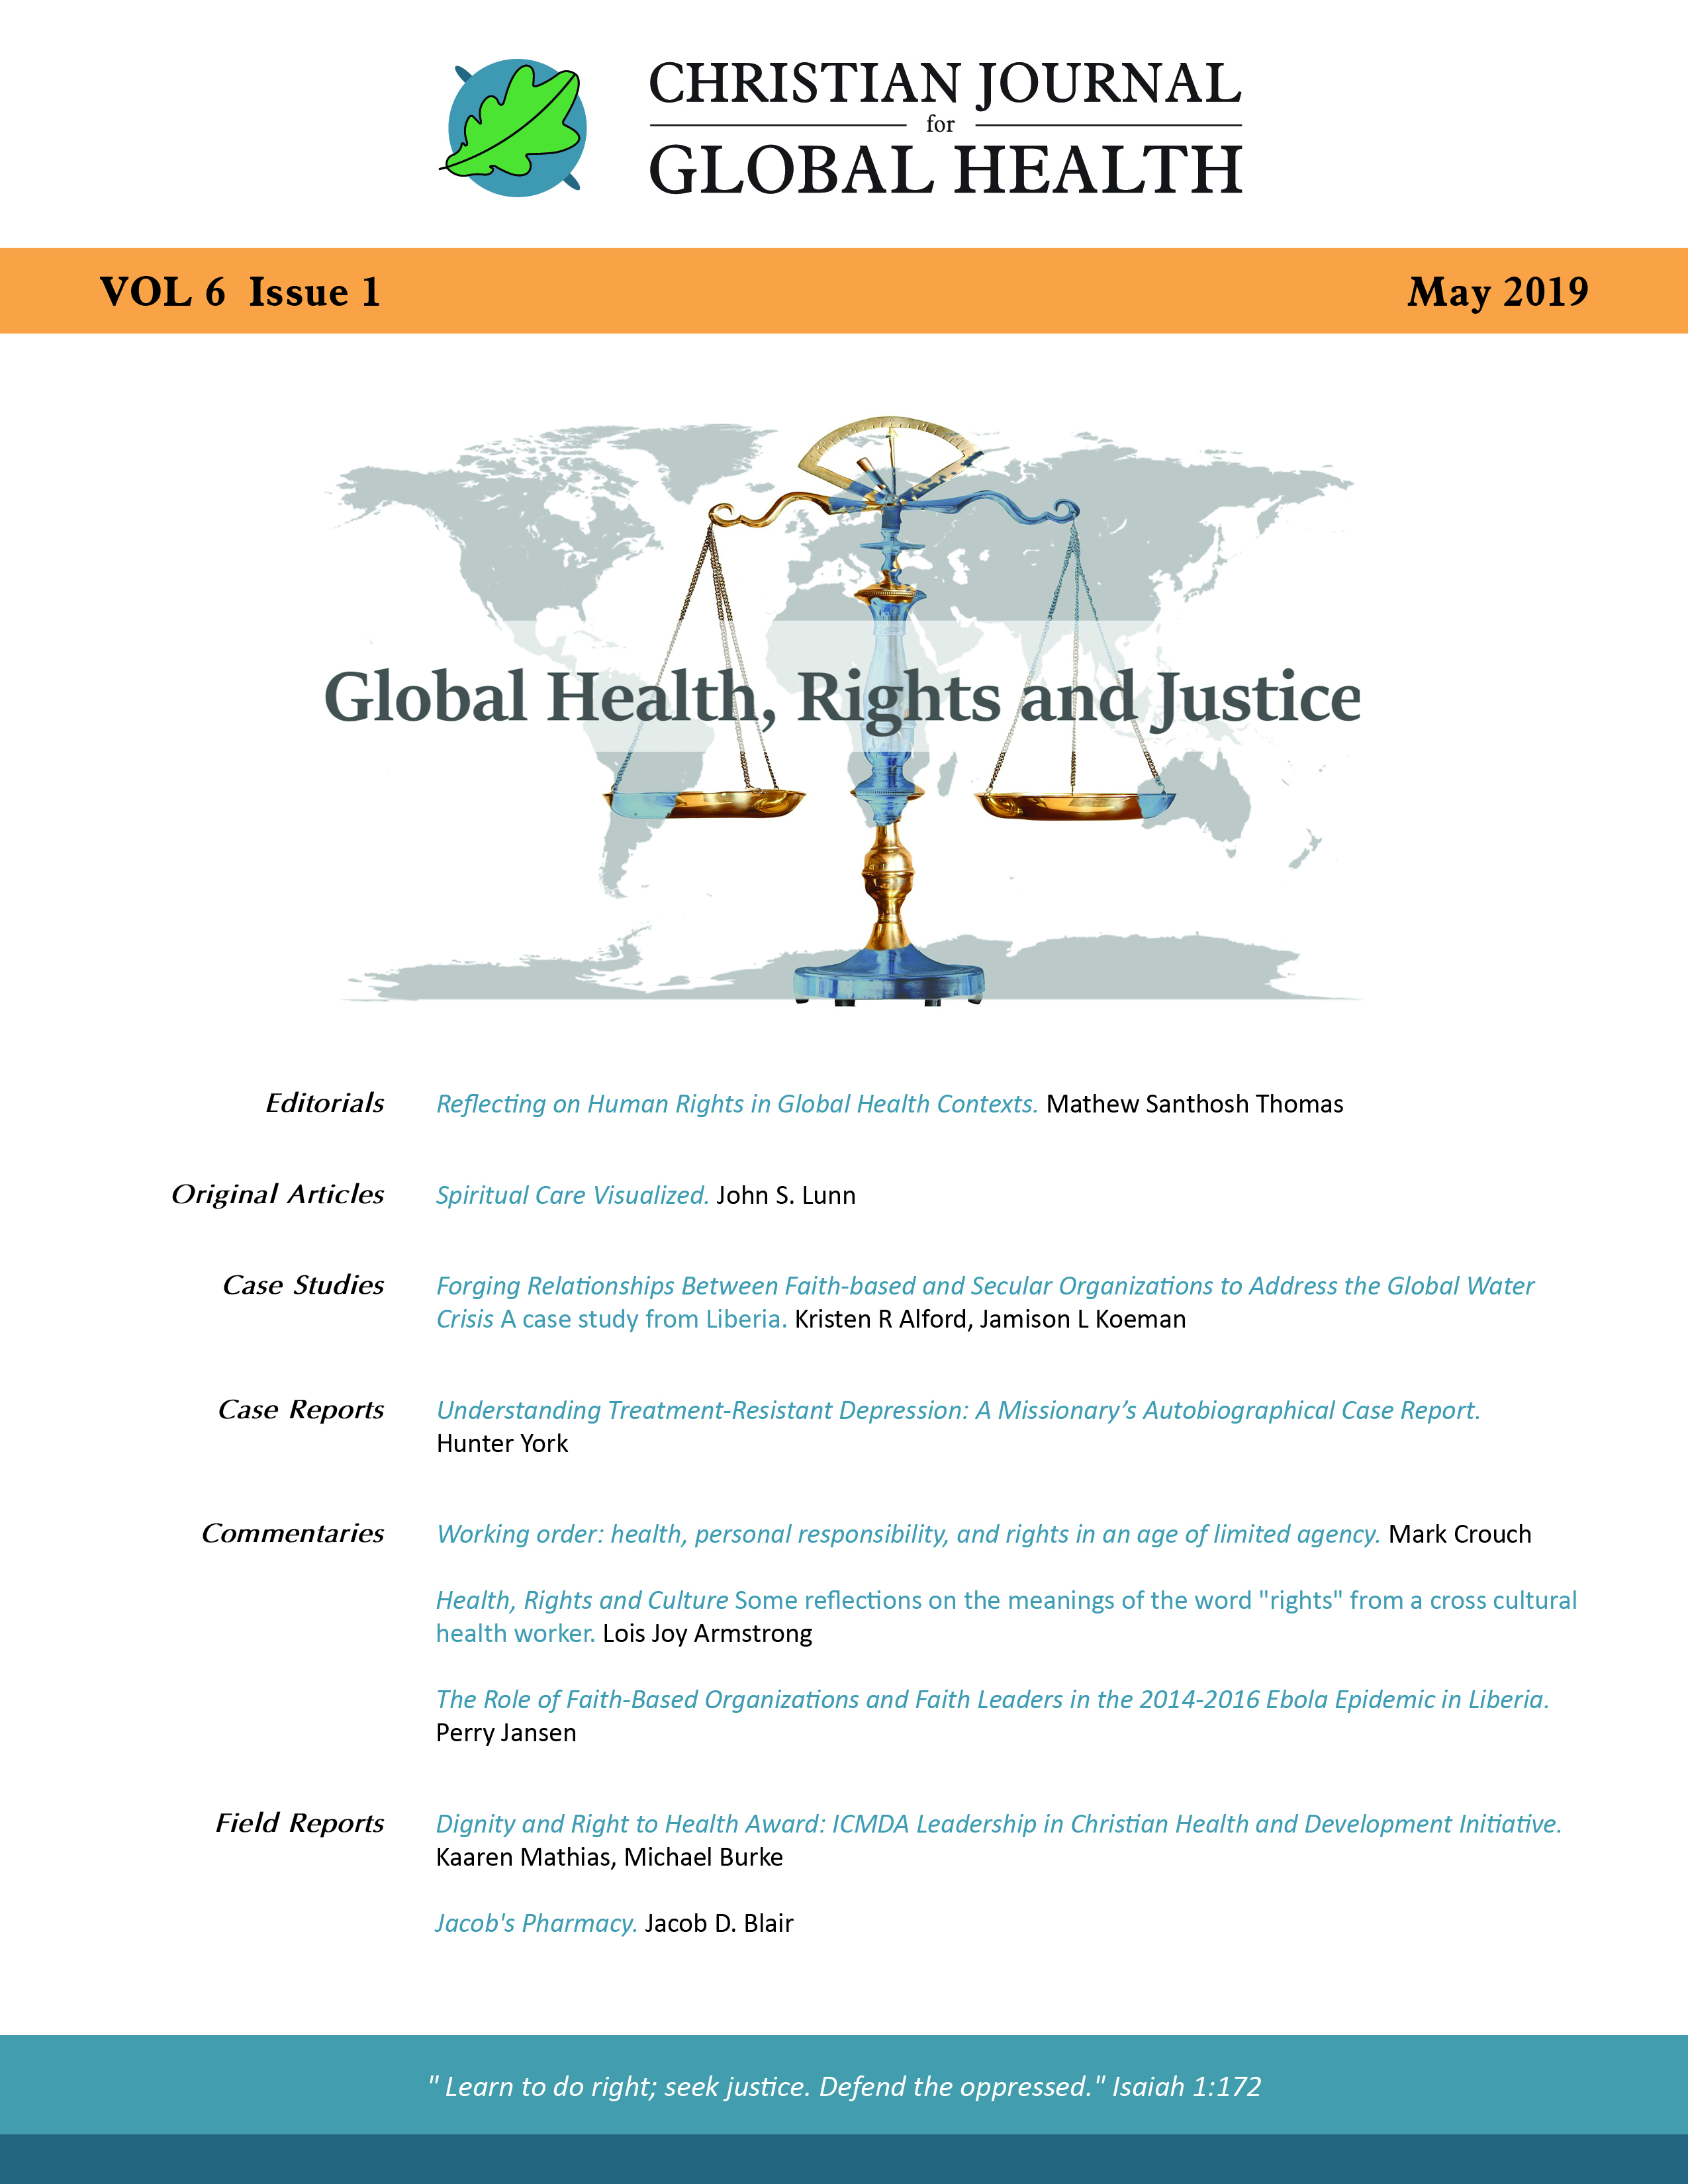 Health, Rights, and Culture | Christian Journal for Global Health